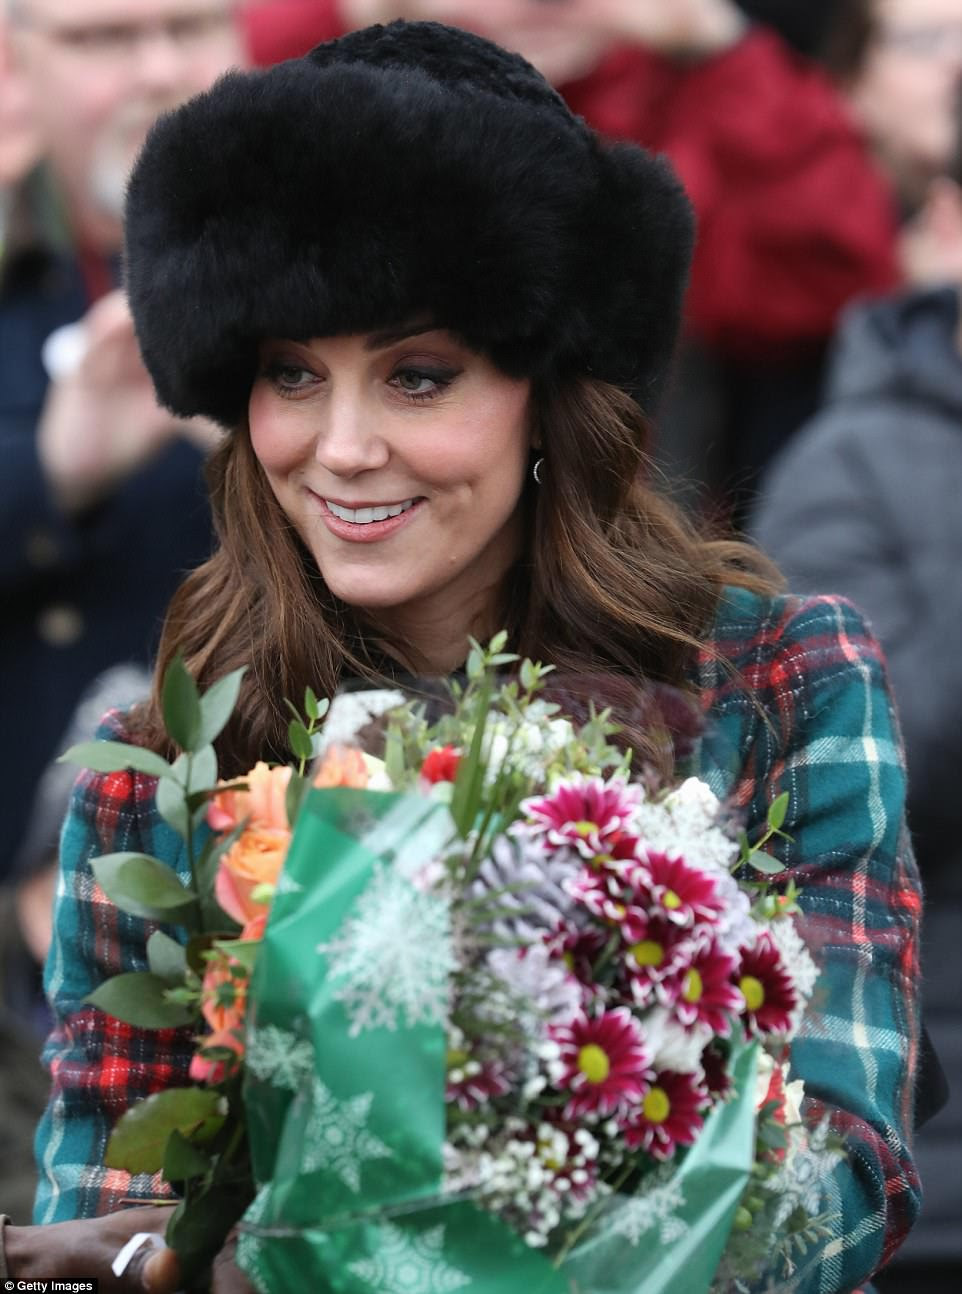 At one point following the Christmas Day service, Kate was handed a beautiful bunch of flowers by a well-wisher